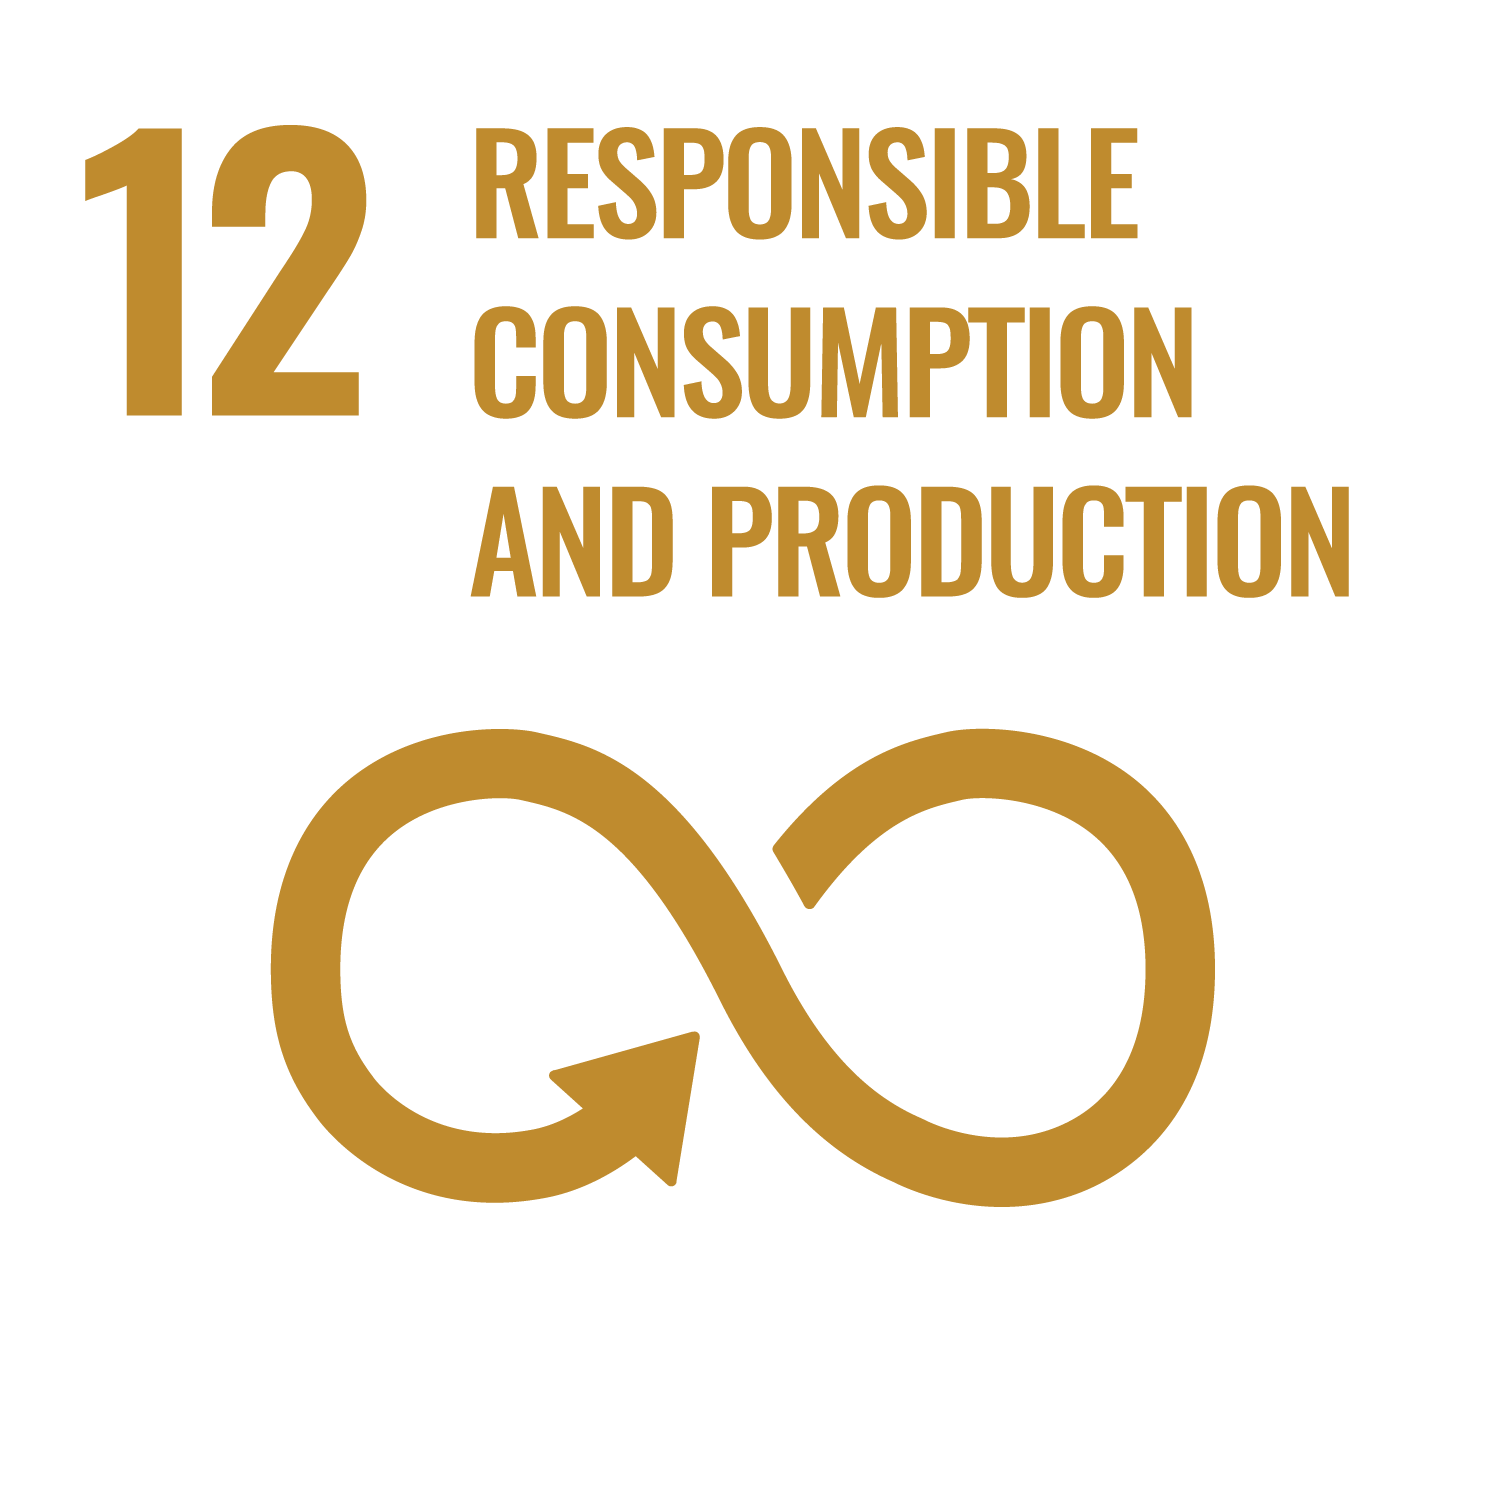 12_Responsible_Consumption_And_Production